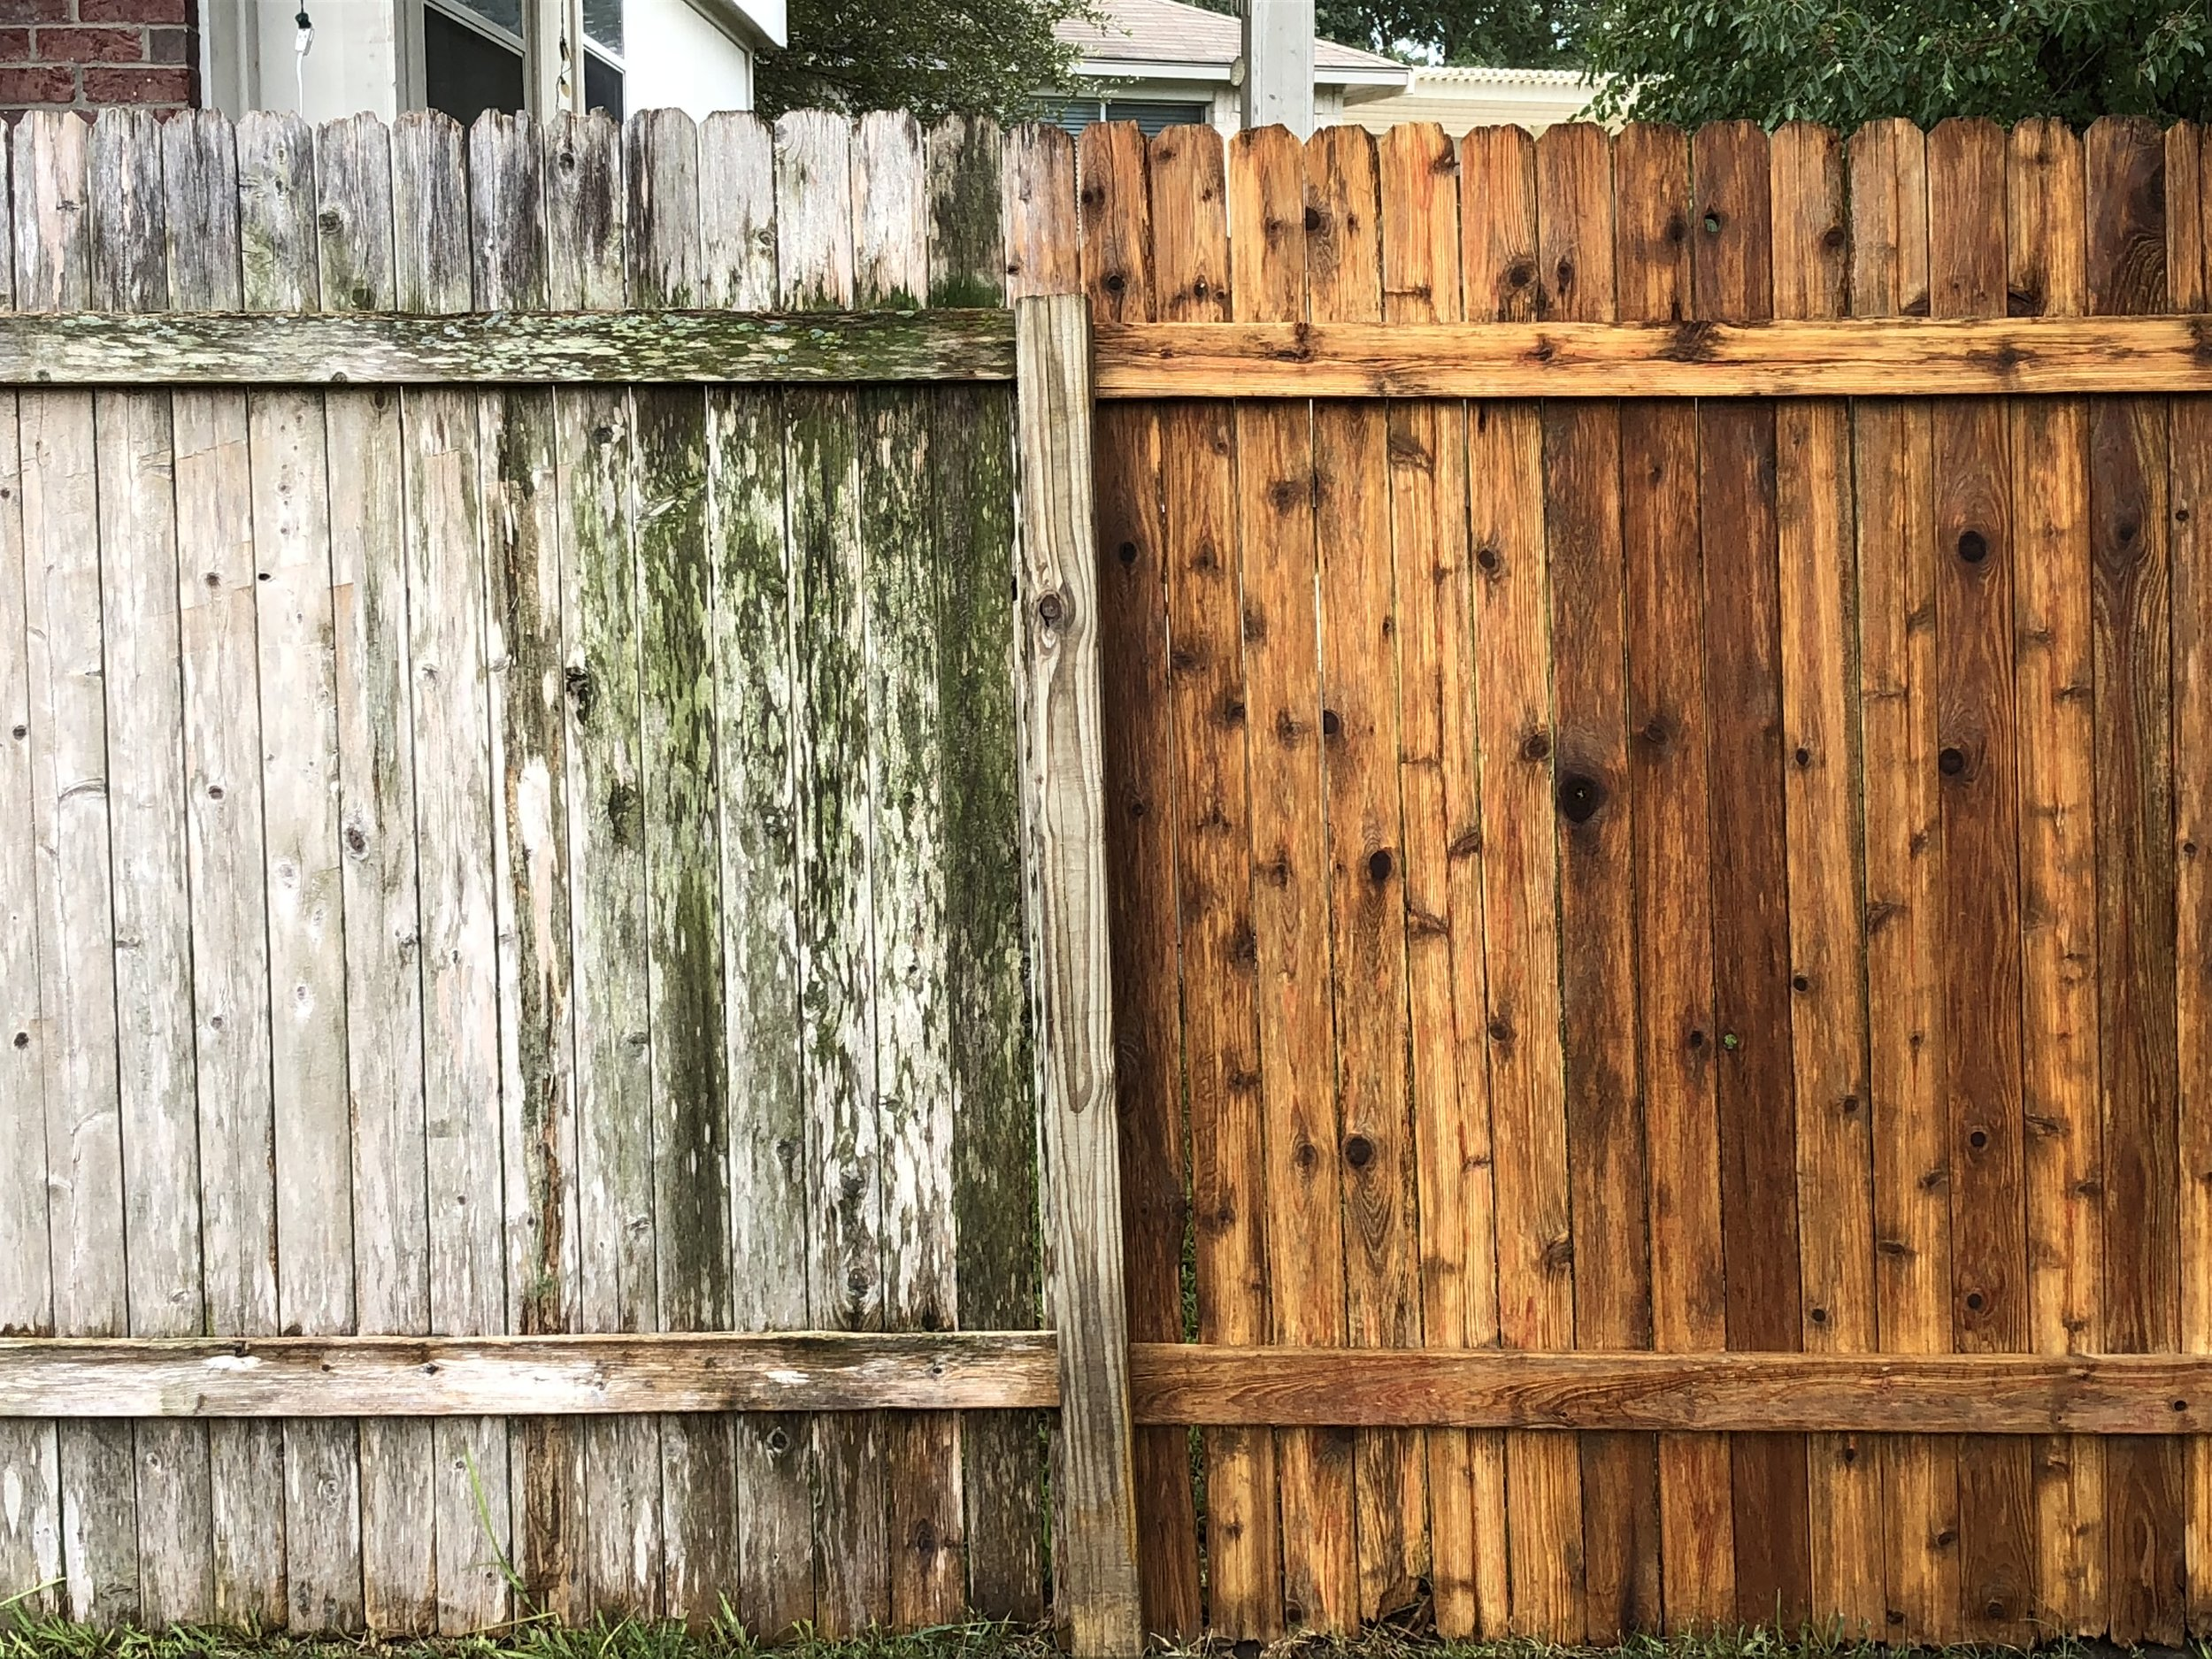 Fence Before After.JPG